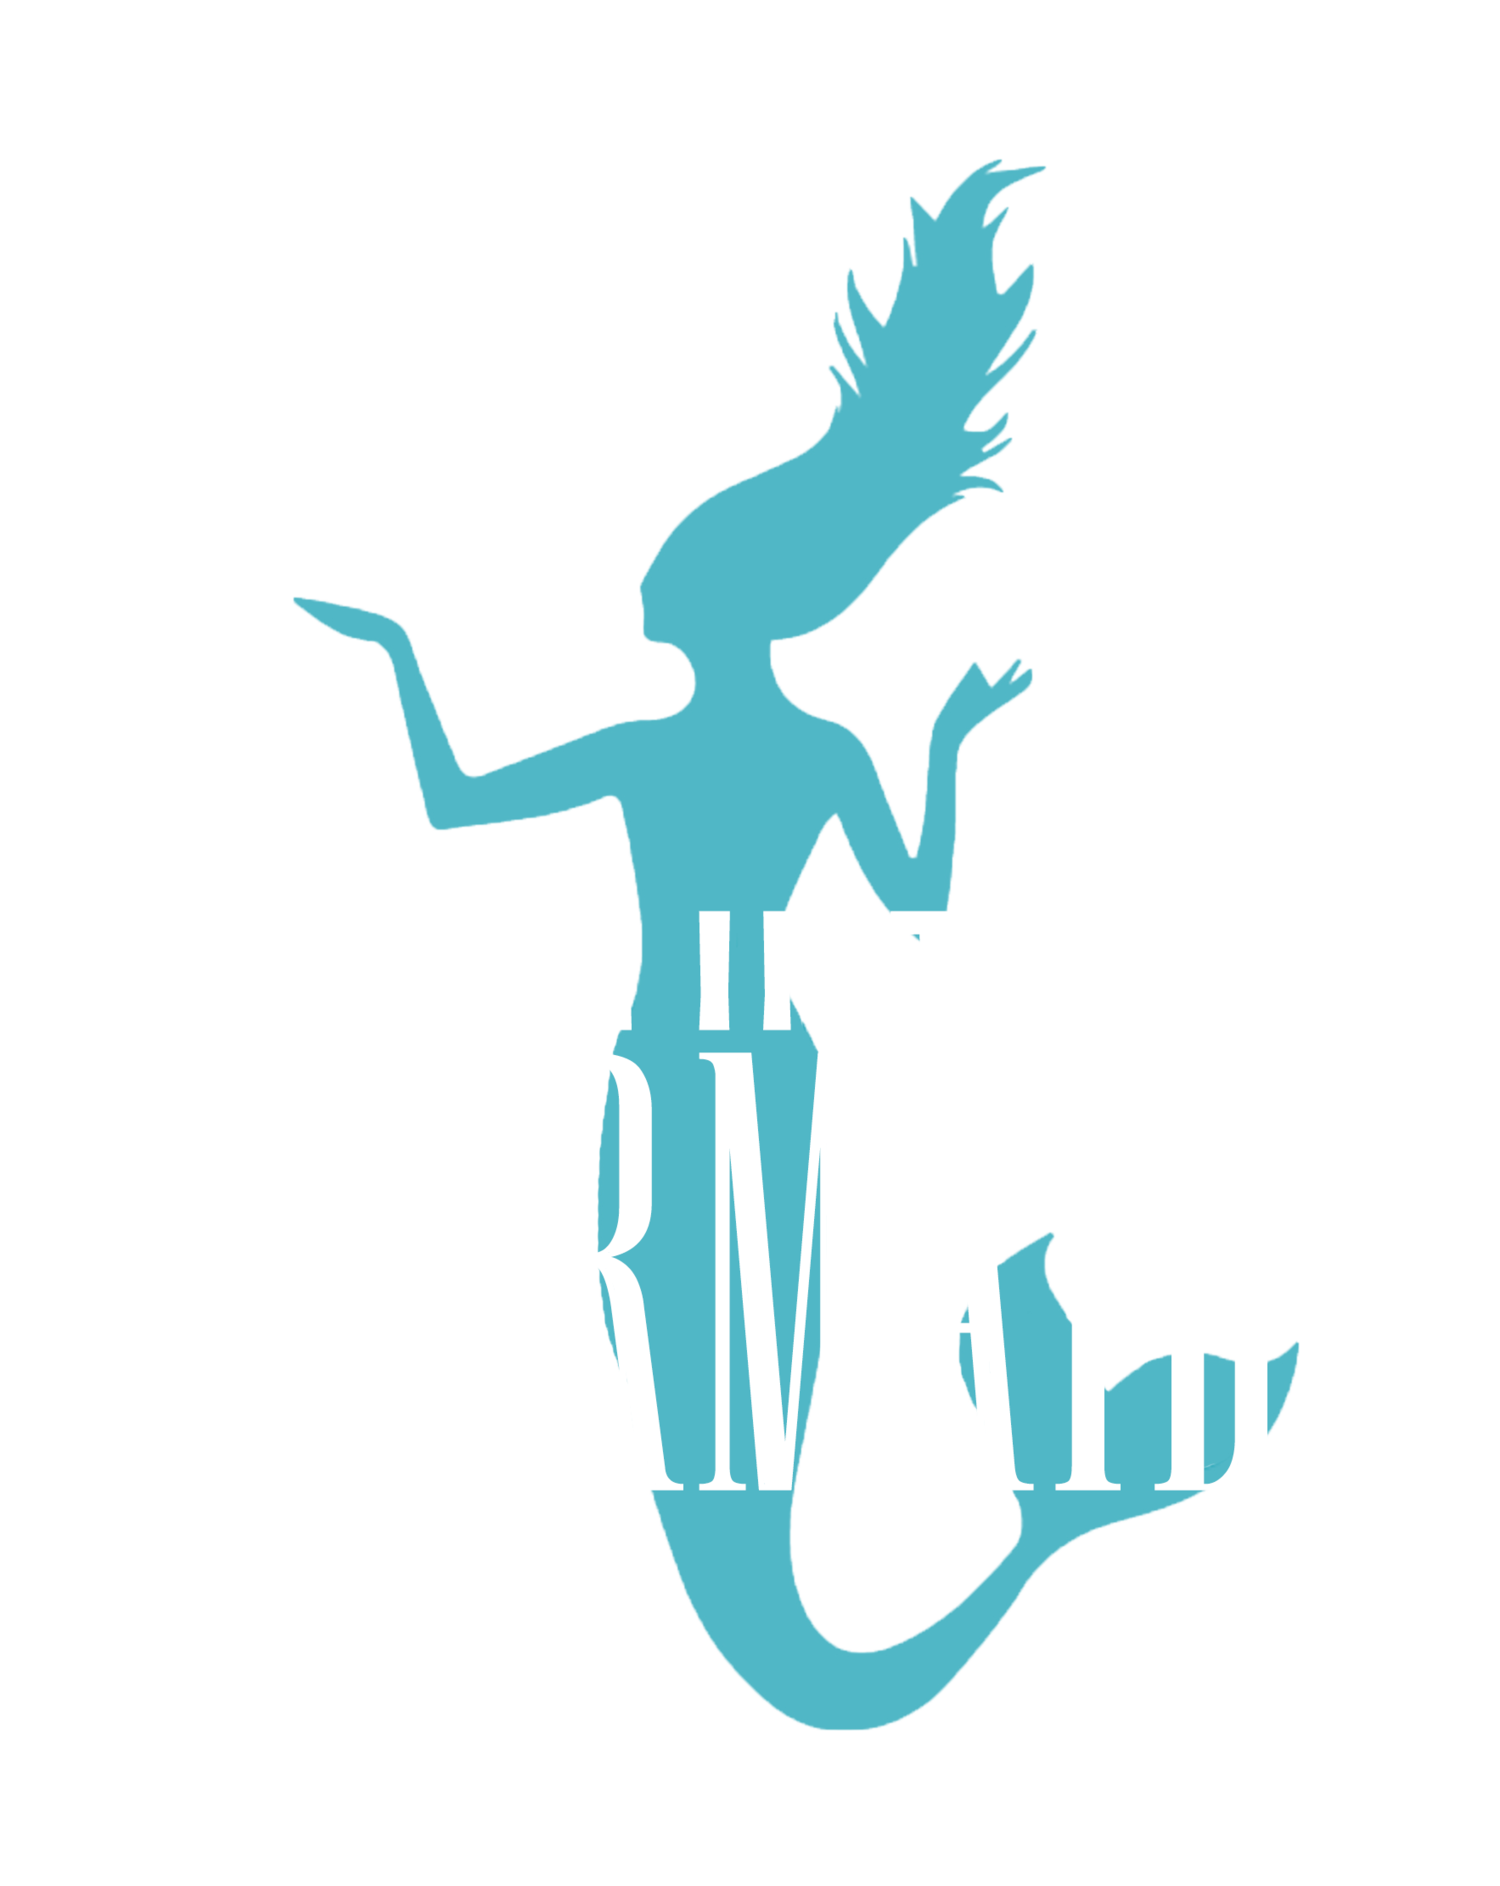 How to Turn into a Mermaid - Mermaid of Hilton Head®